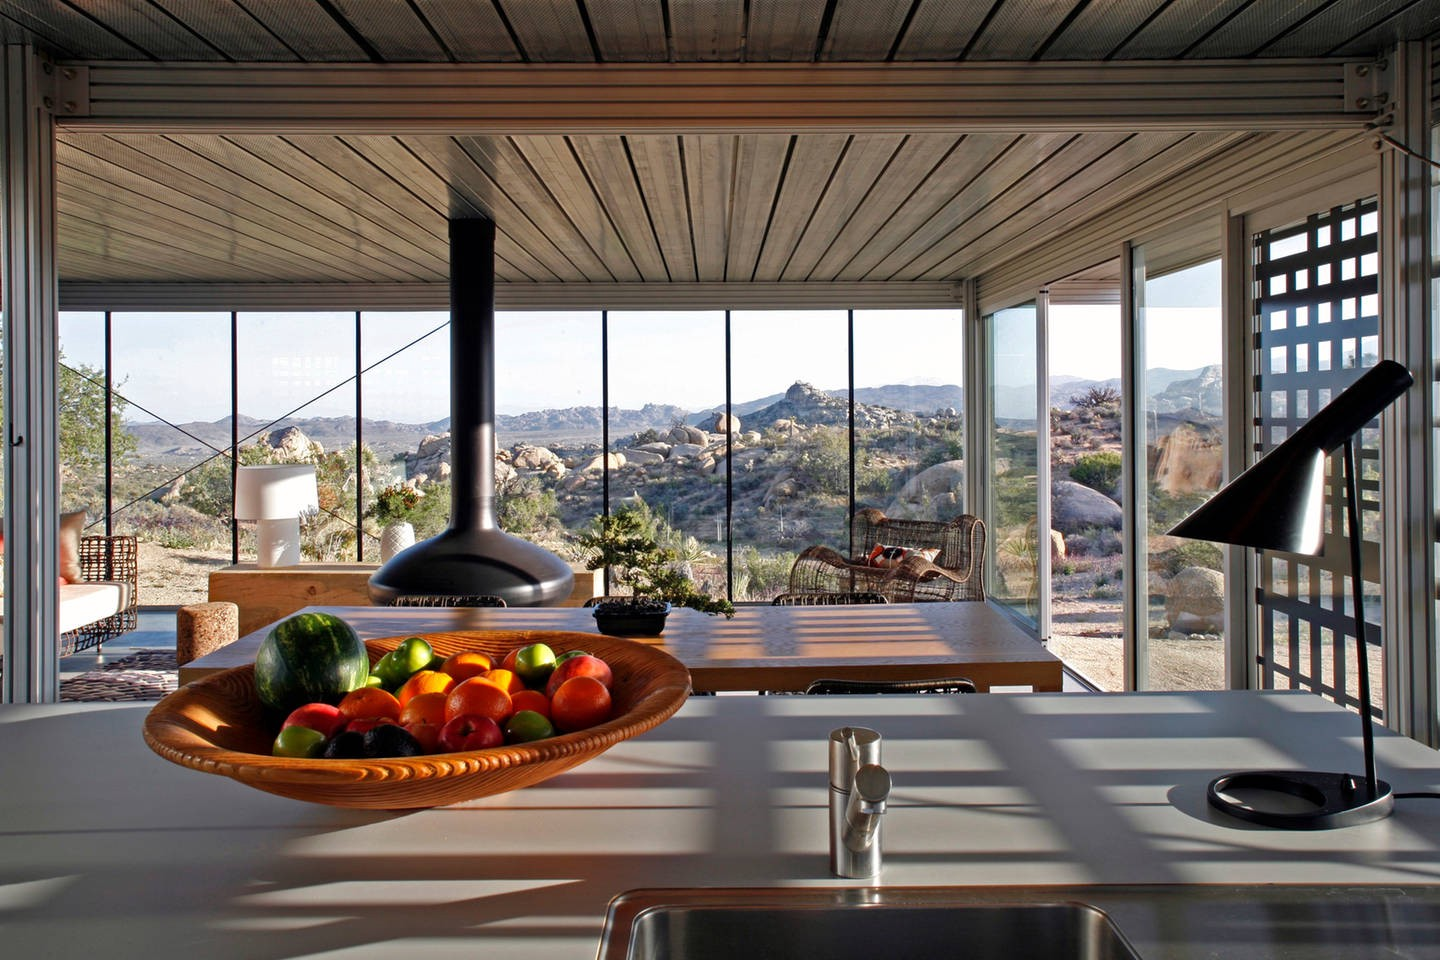 10 Architectural Masterworks You Can Rent on Airbnb